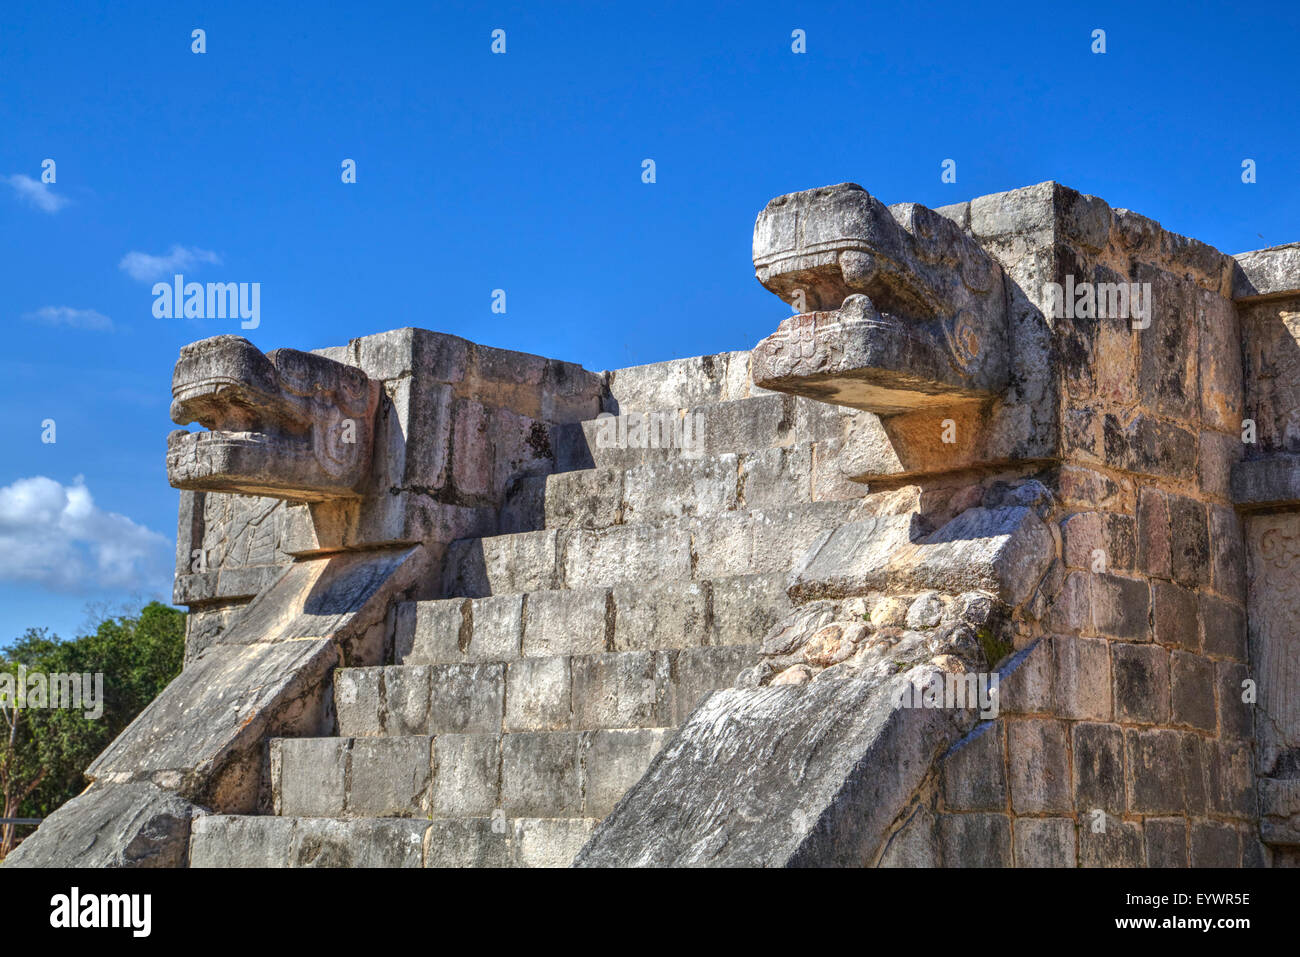 Platform of the Eagles and Jaguars, Chichen Itza, UNESCO World Heritage Site, Yucatan, Mexico, North America - Stock Image